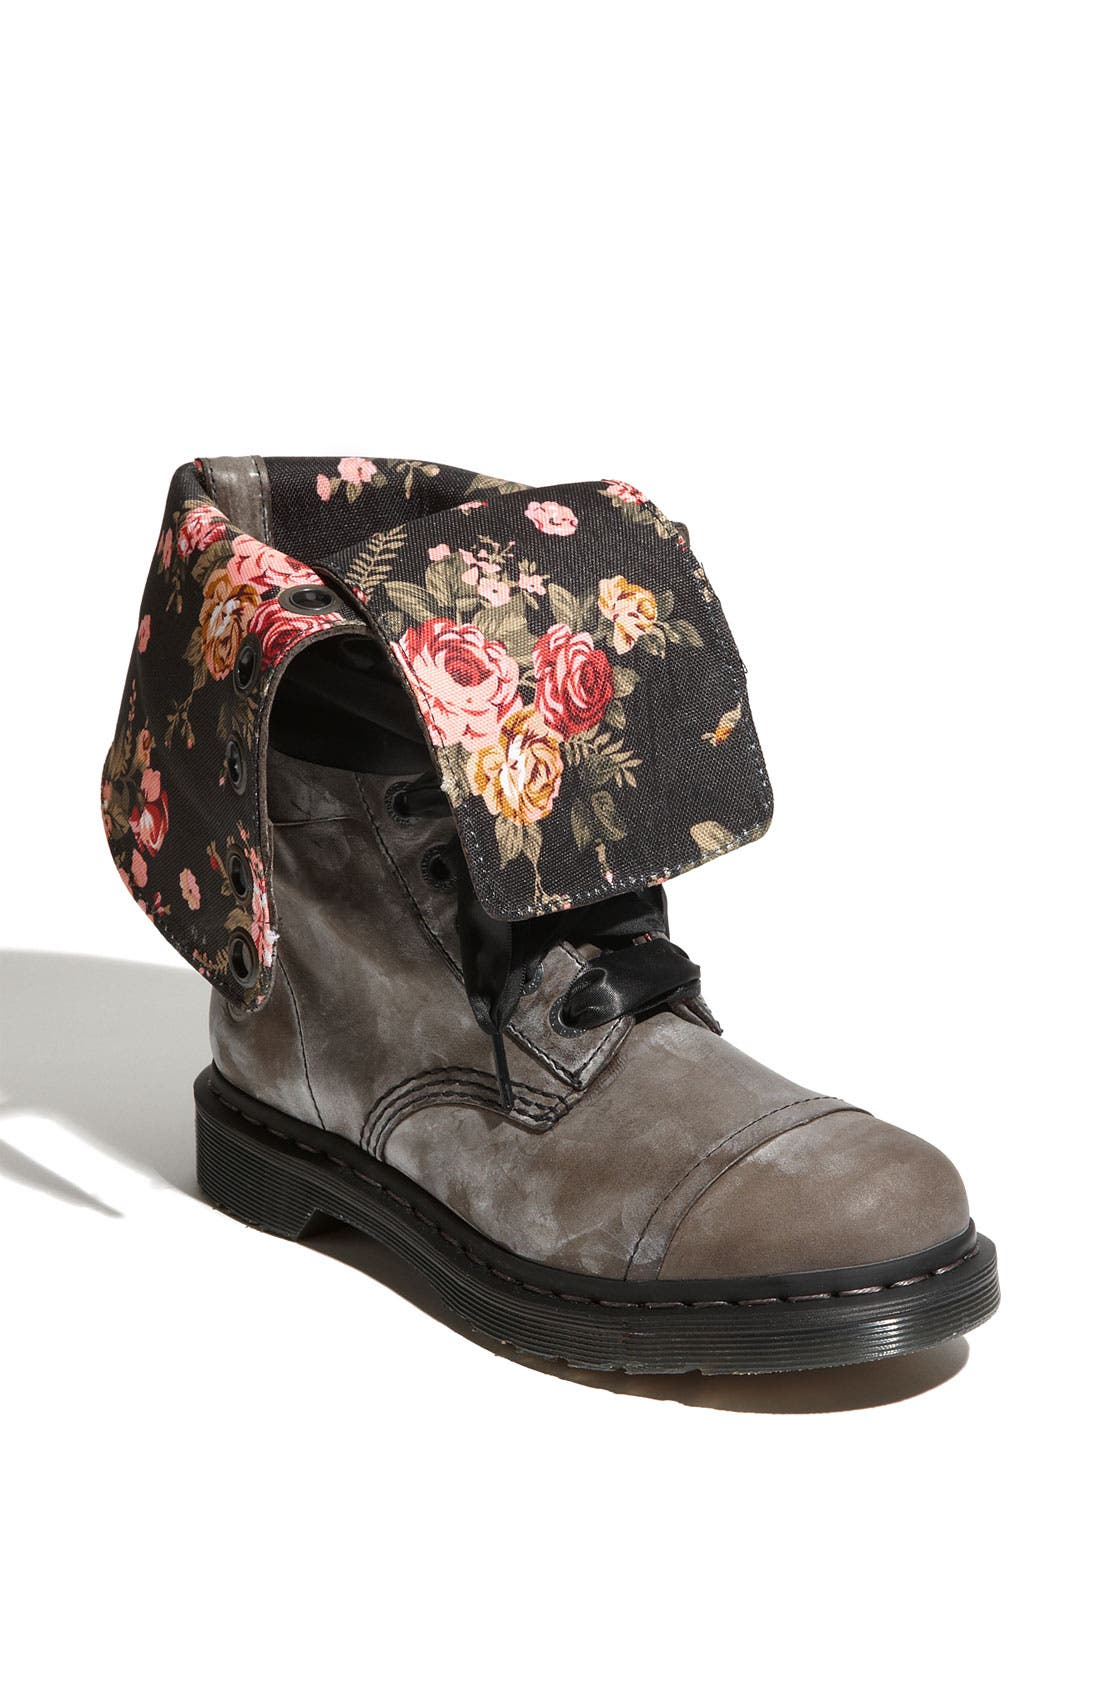 Alternate Image 1 Selected - Dr. Martens 'Triumph 1914' Lace-Up Boot